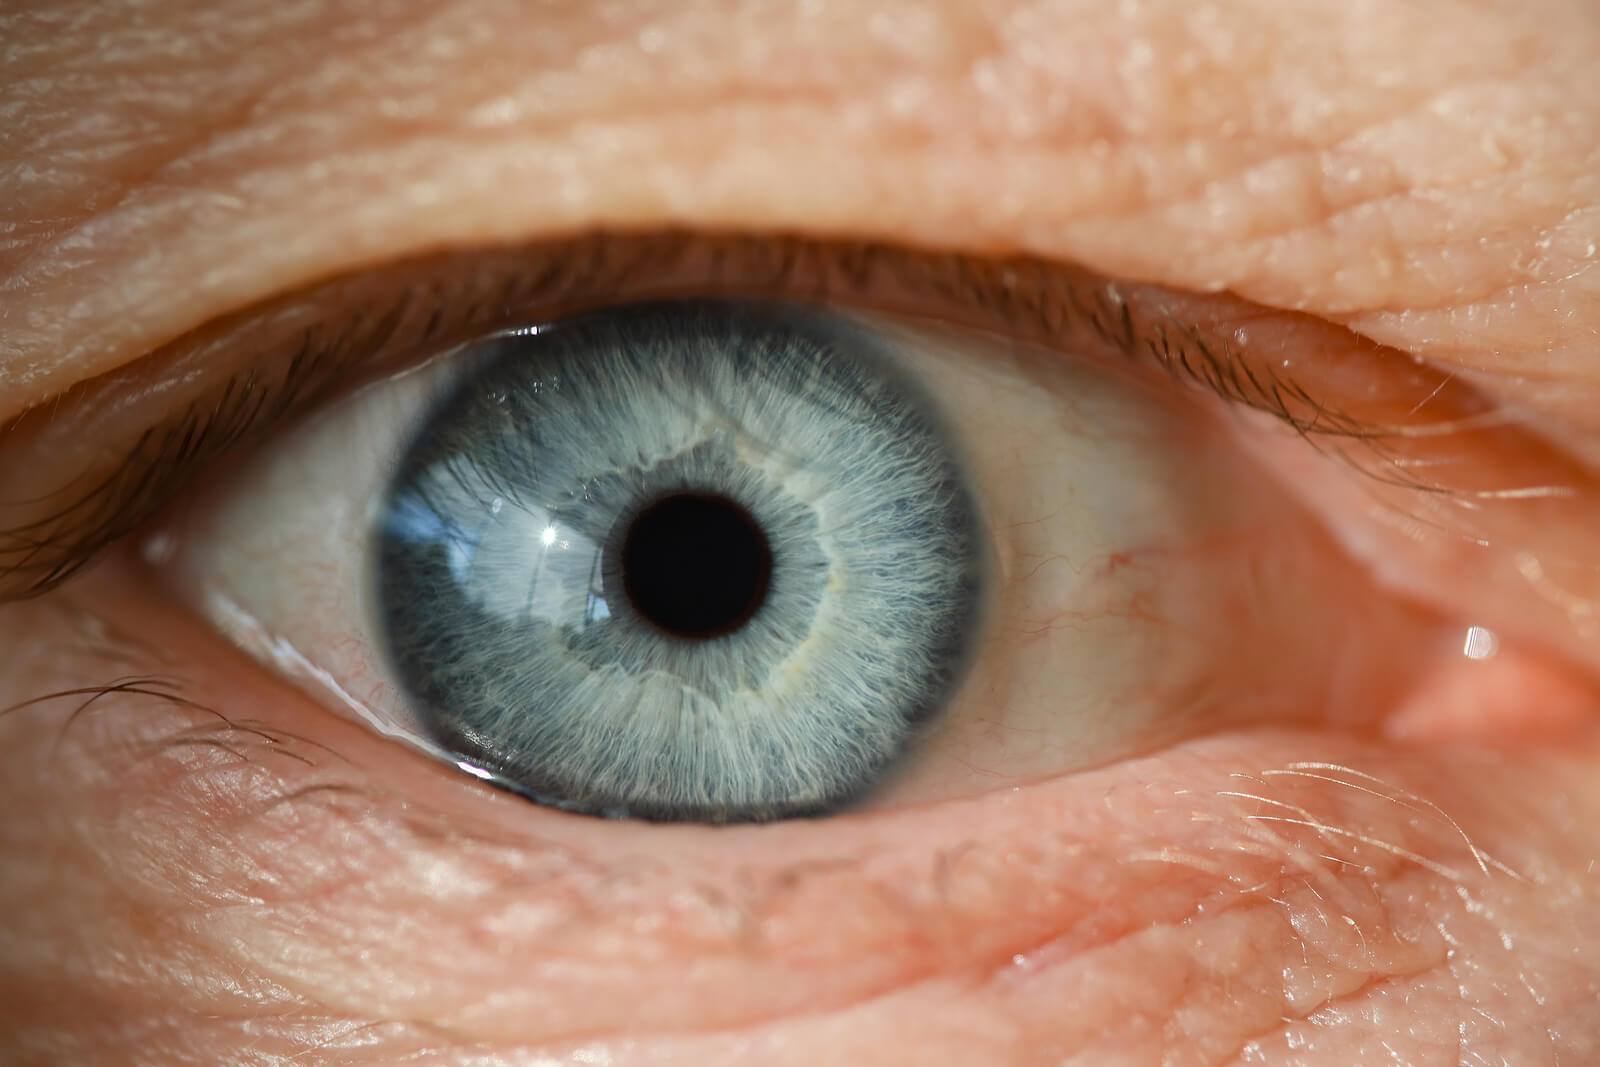 Cataracts are a common eye problem